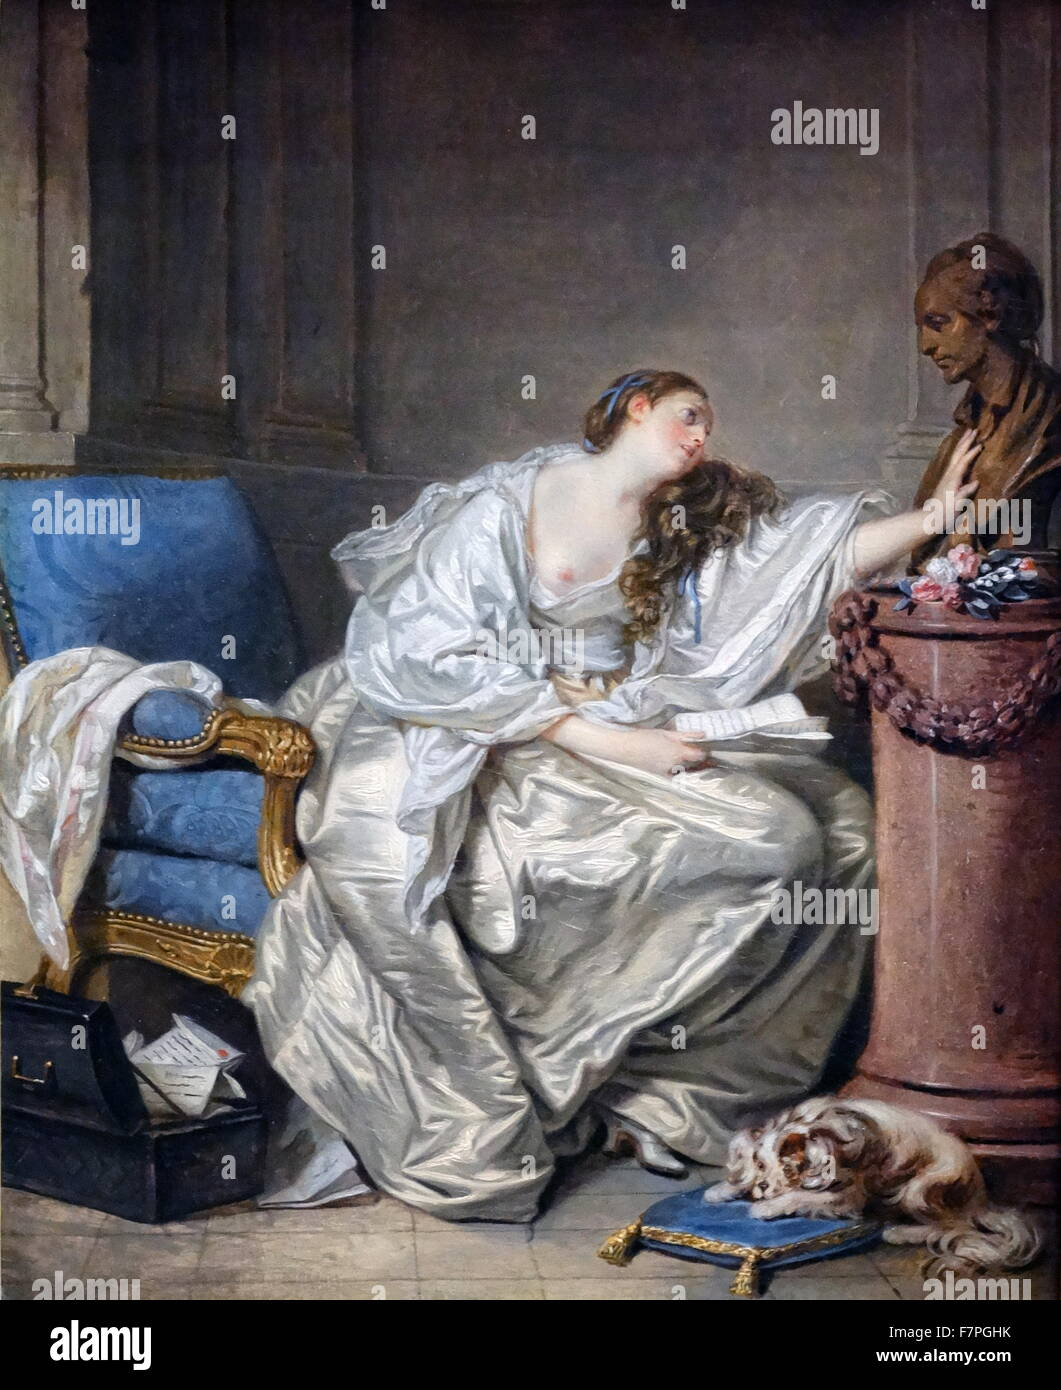 The Inconsolable Widow by Jean-Baptiste Greuze - Stock Image